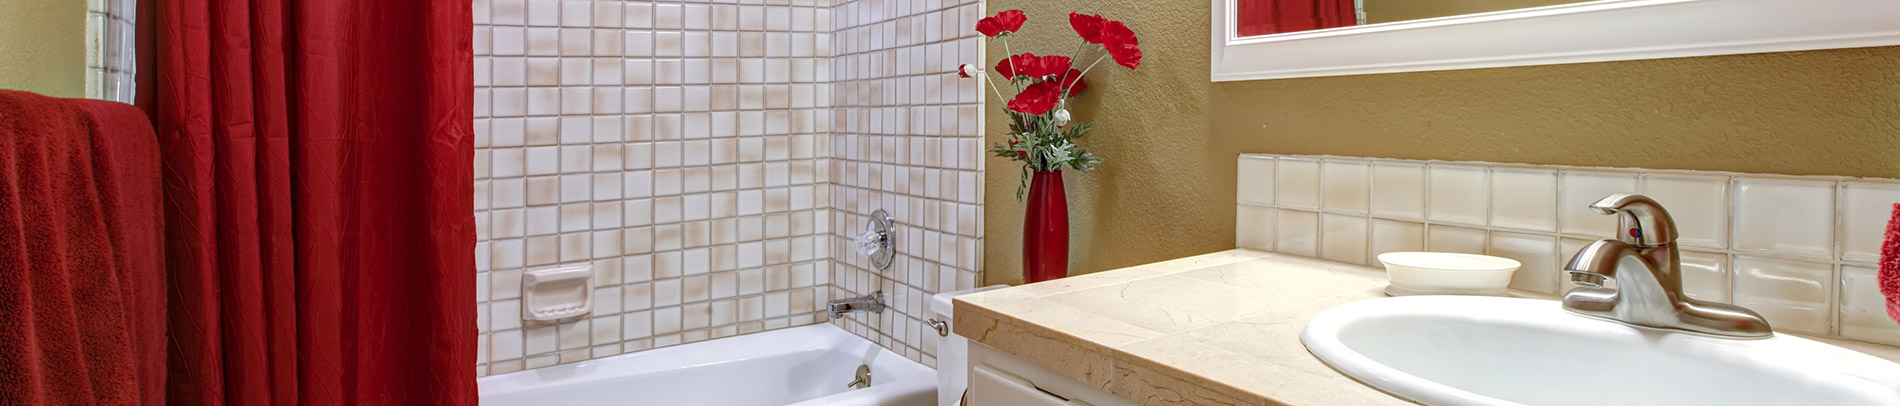 Manitowoc homeowners does bathroom remodel in red